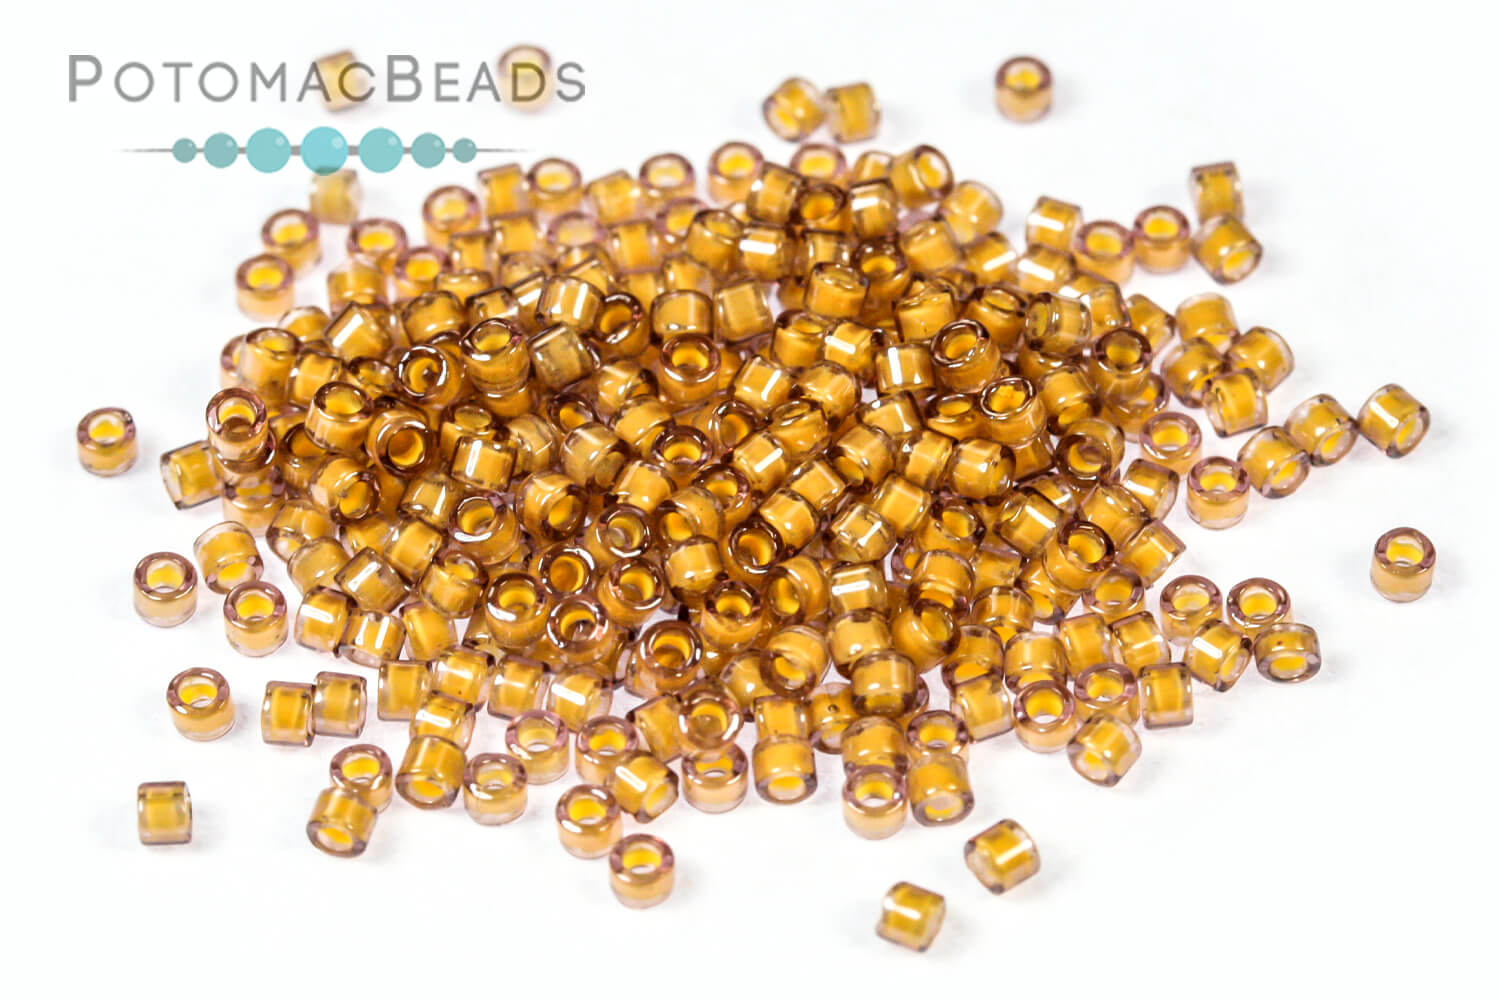 Seed Beads / Miyuki Delicas Beads / Delica Beads Size 11/0 - Luminous Colors